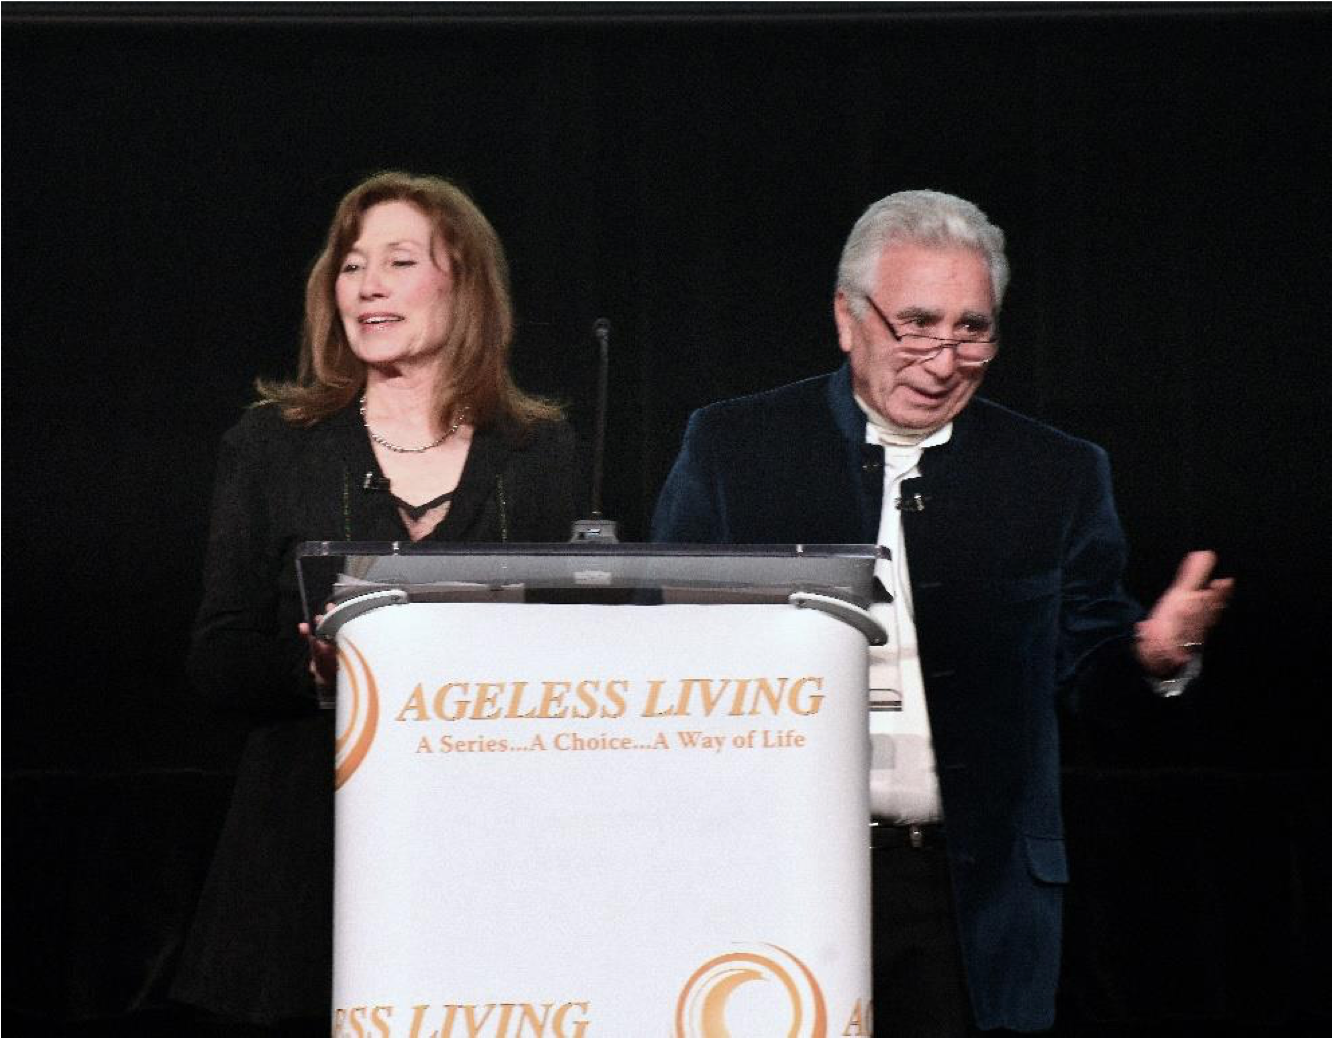 The Ageless Living Television Premier